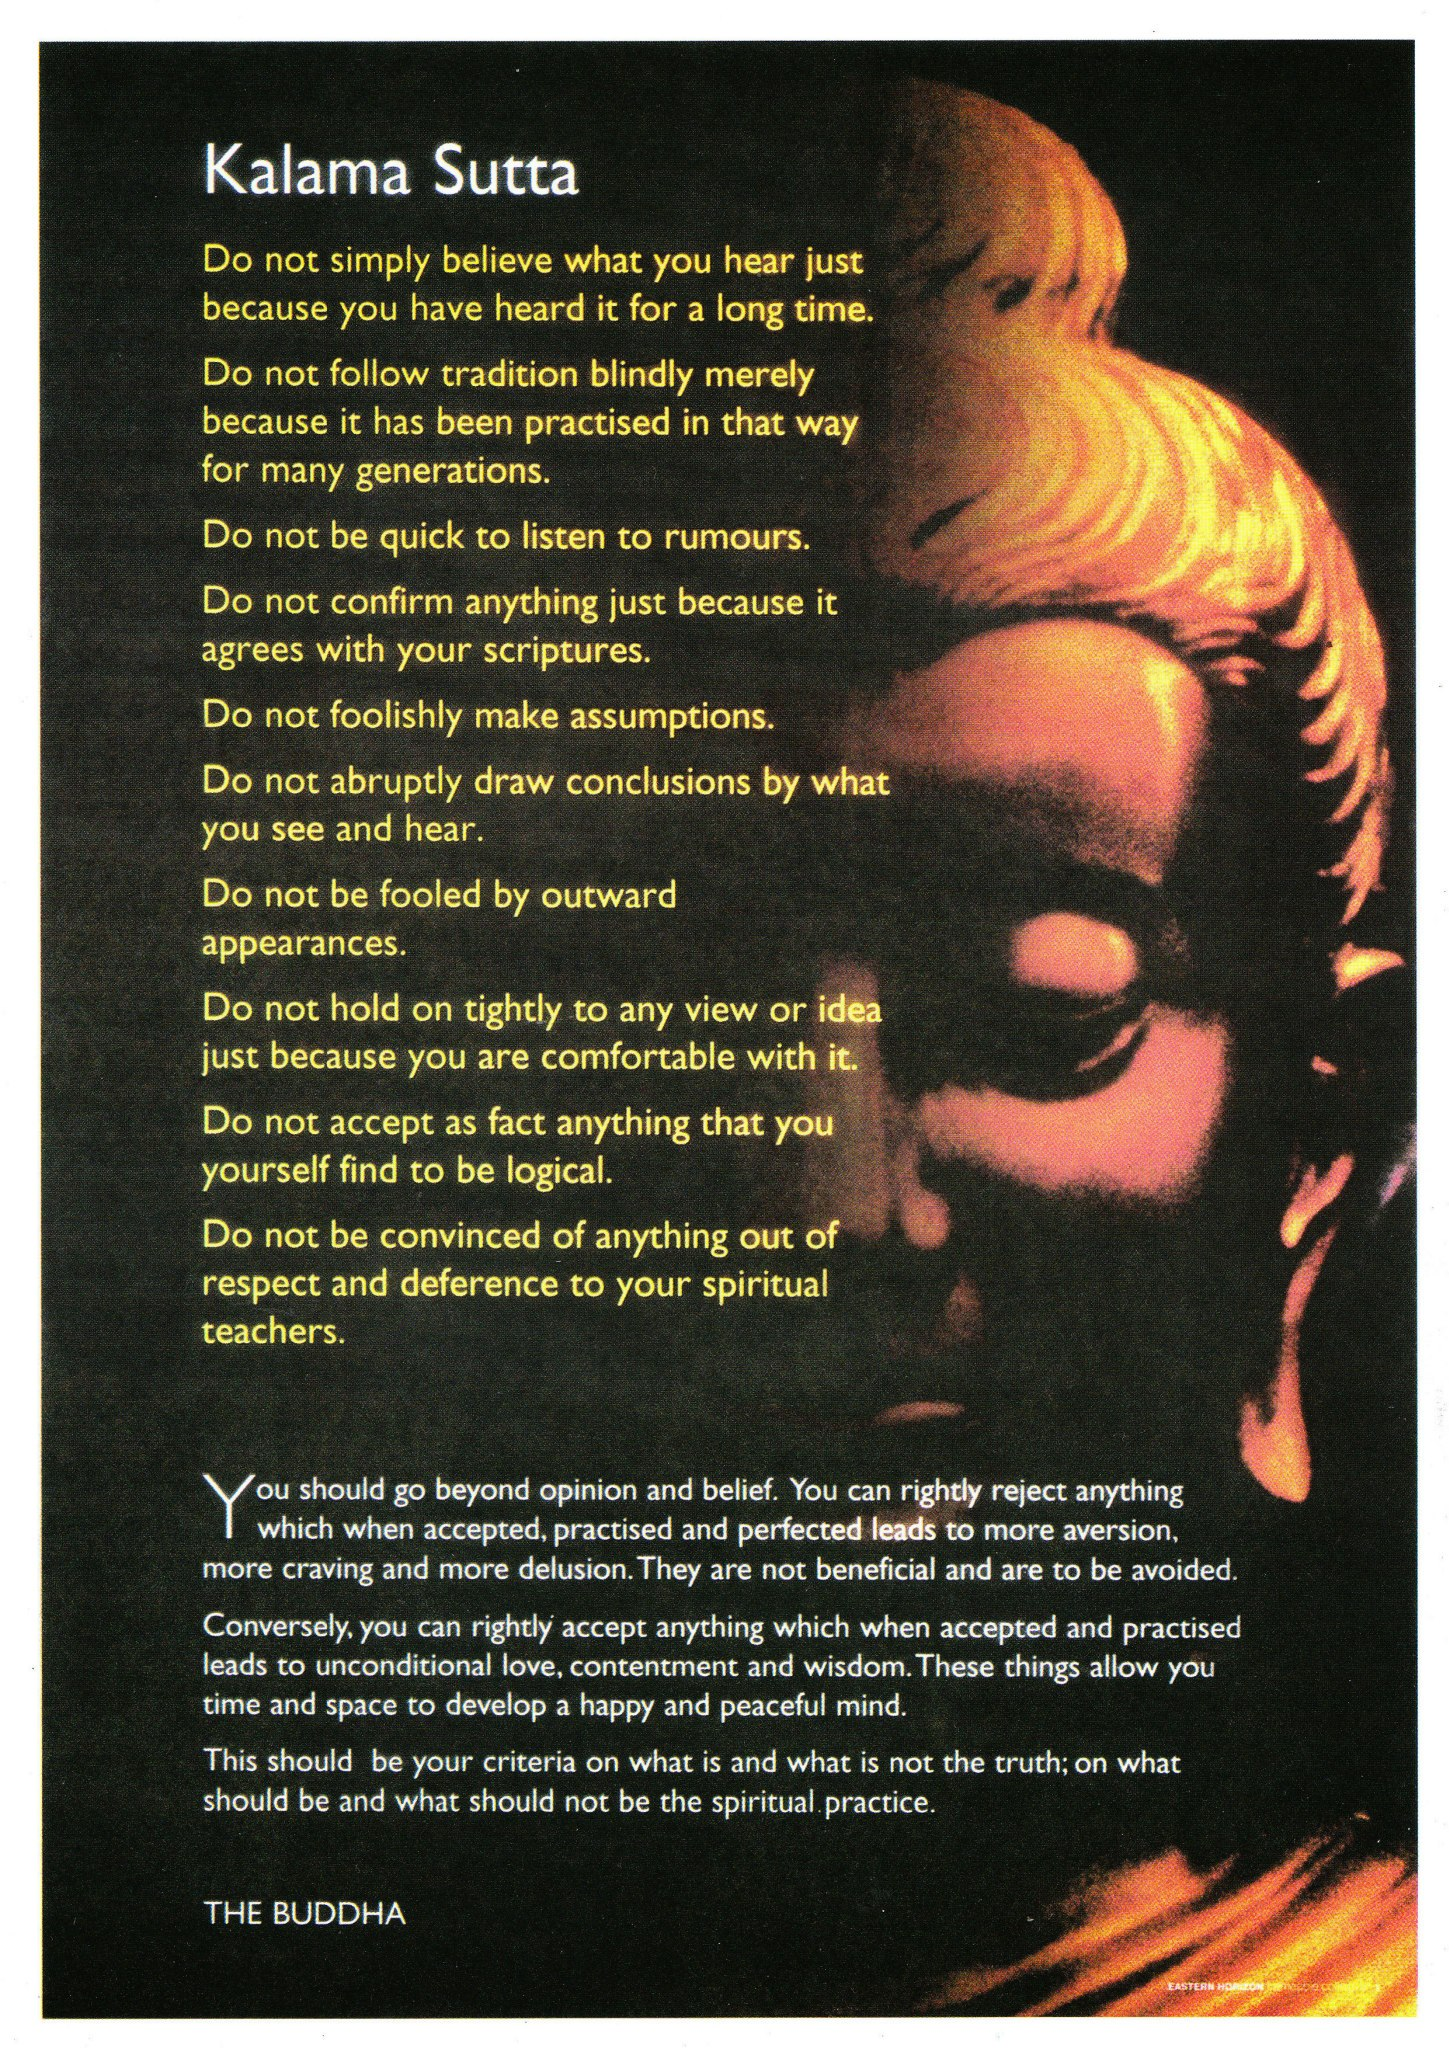 Real Buddha Quotes The Real Kalama Sutta In Response To Fake Buddha Quotes